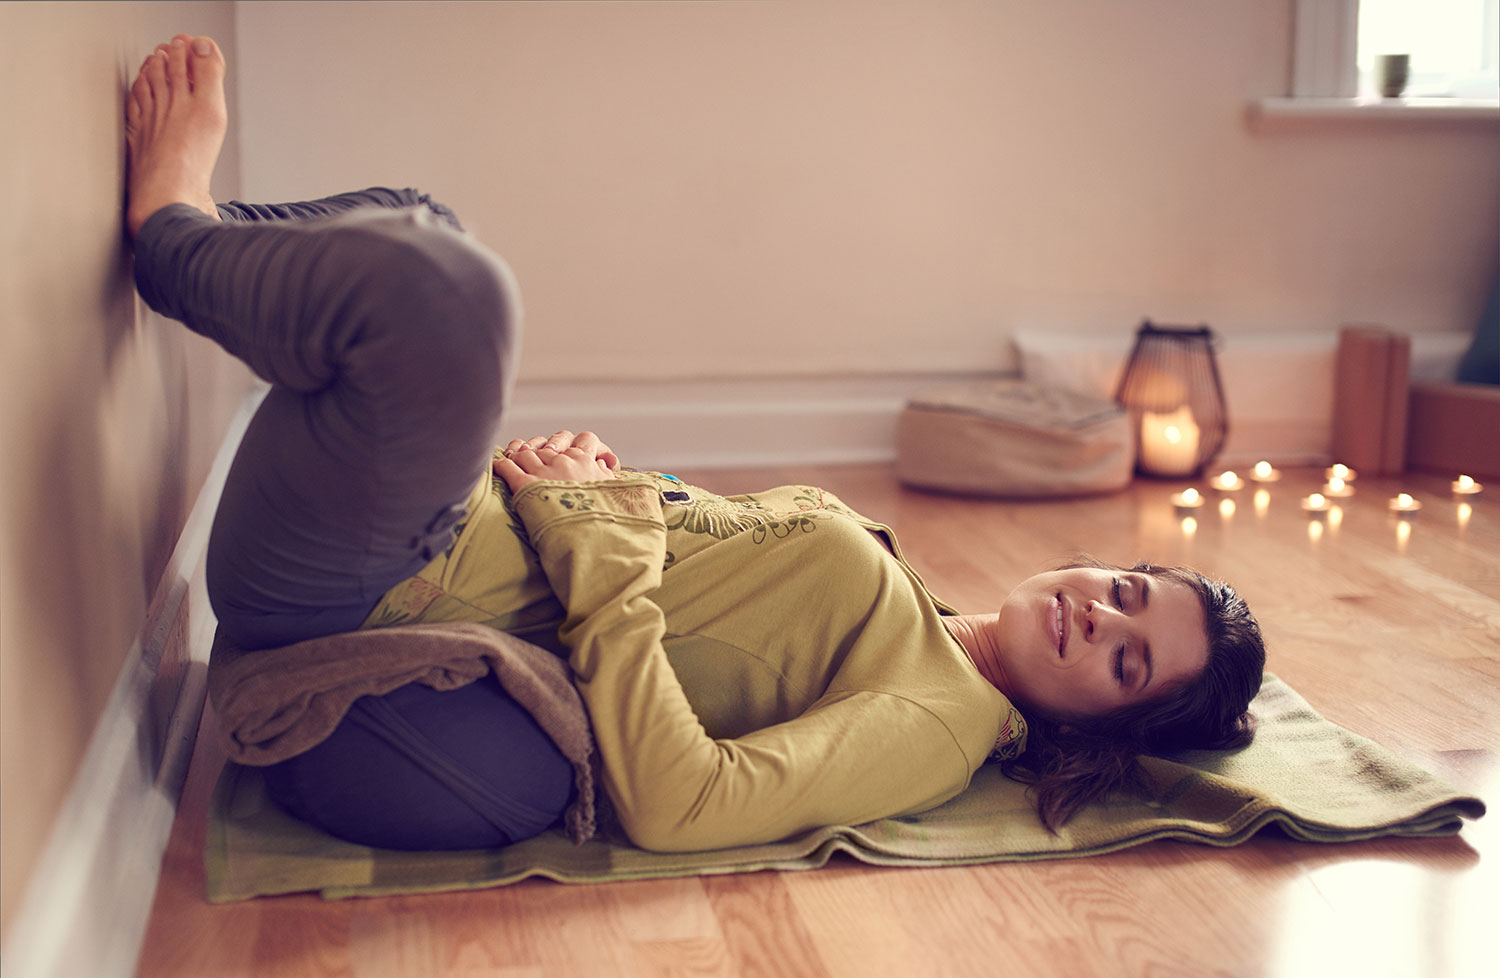 Yoga Blankets Your Guide to Use and Choose the Best One for You